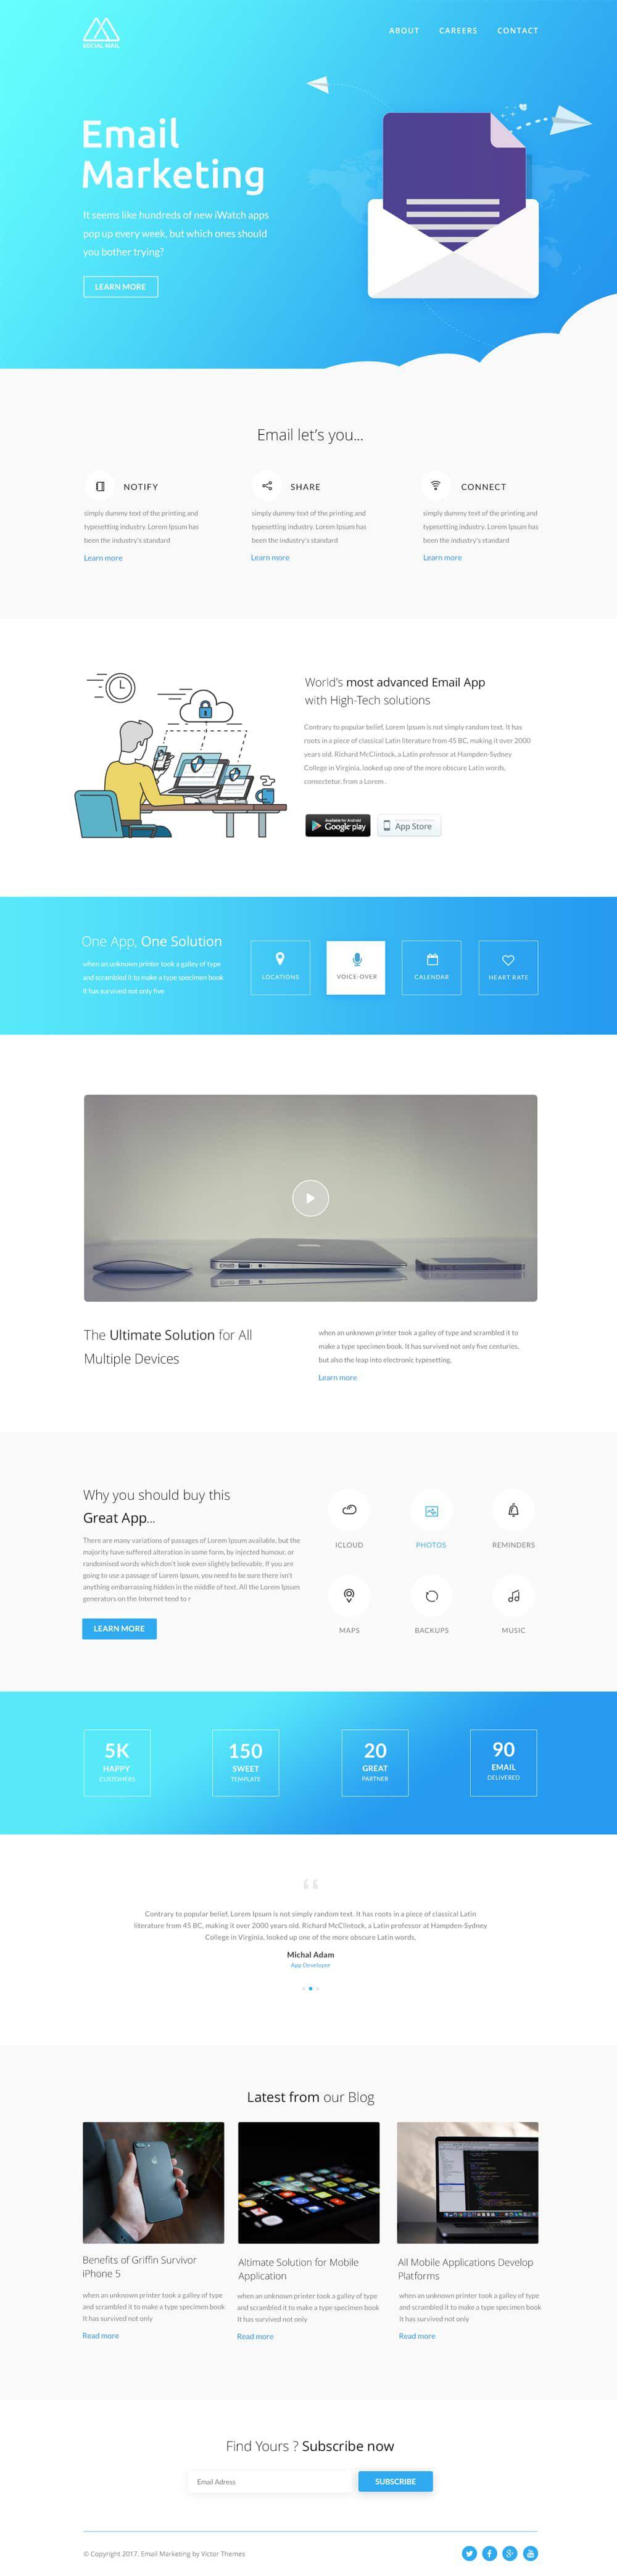 002 Stunning Free Email Newsletter Template Download Image  Busines PsdFull